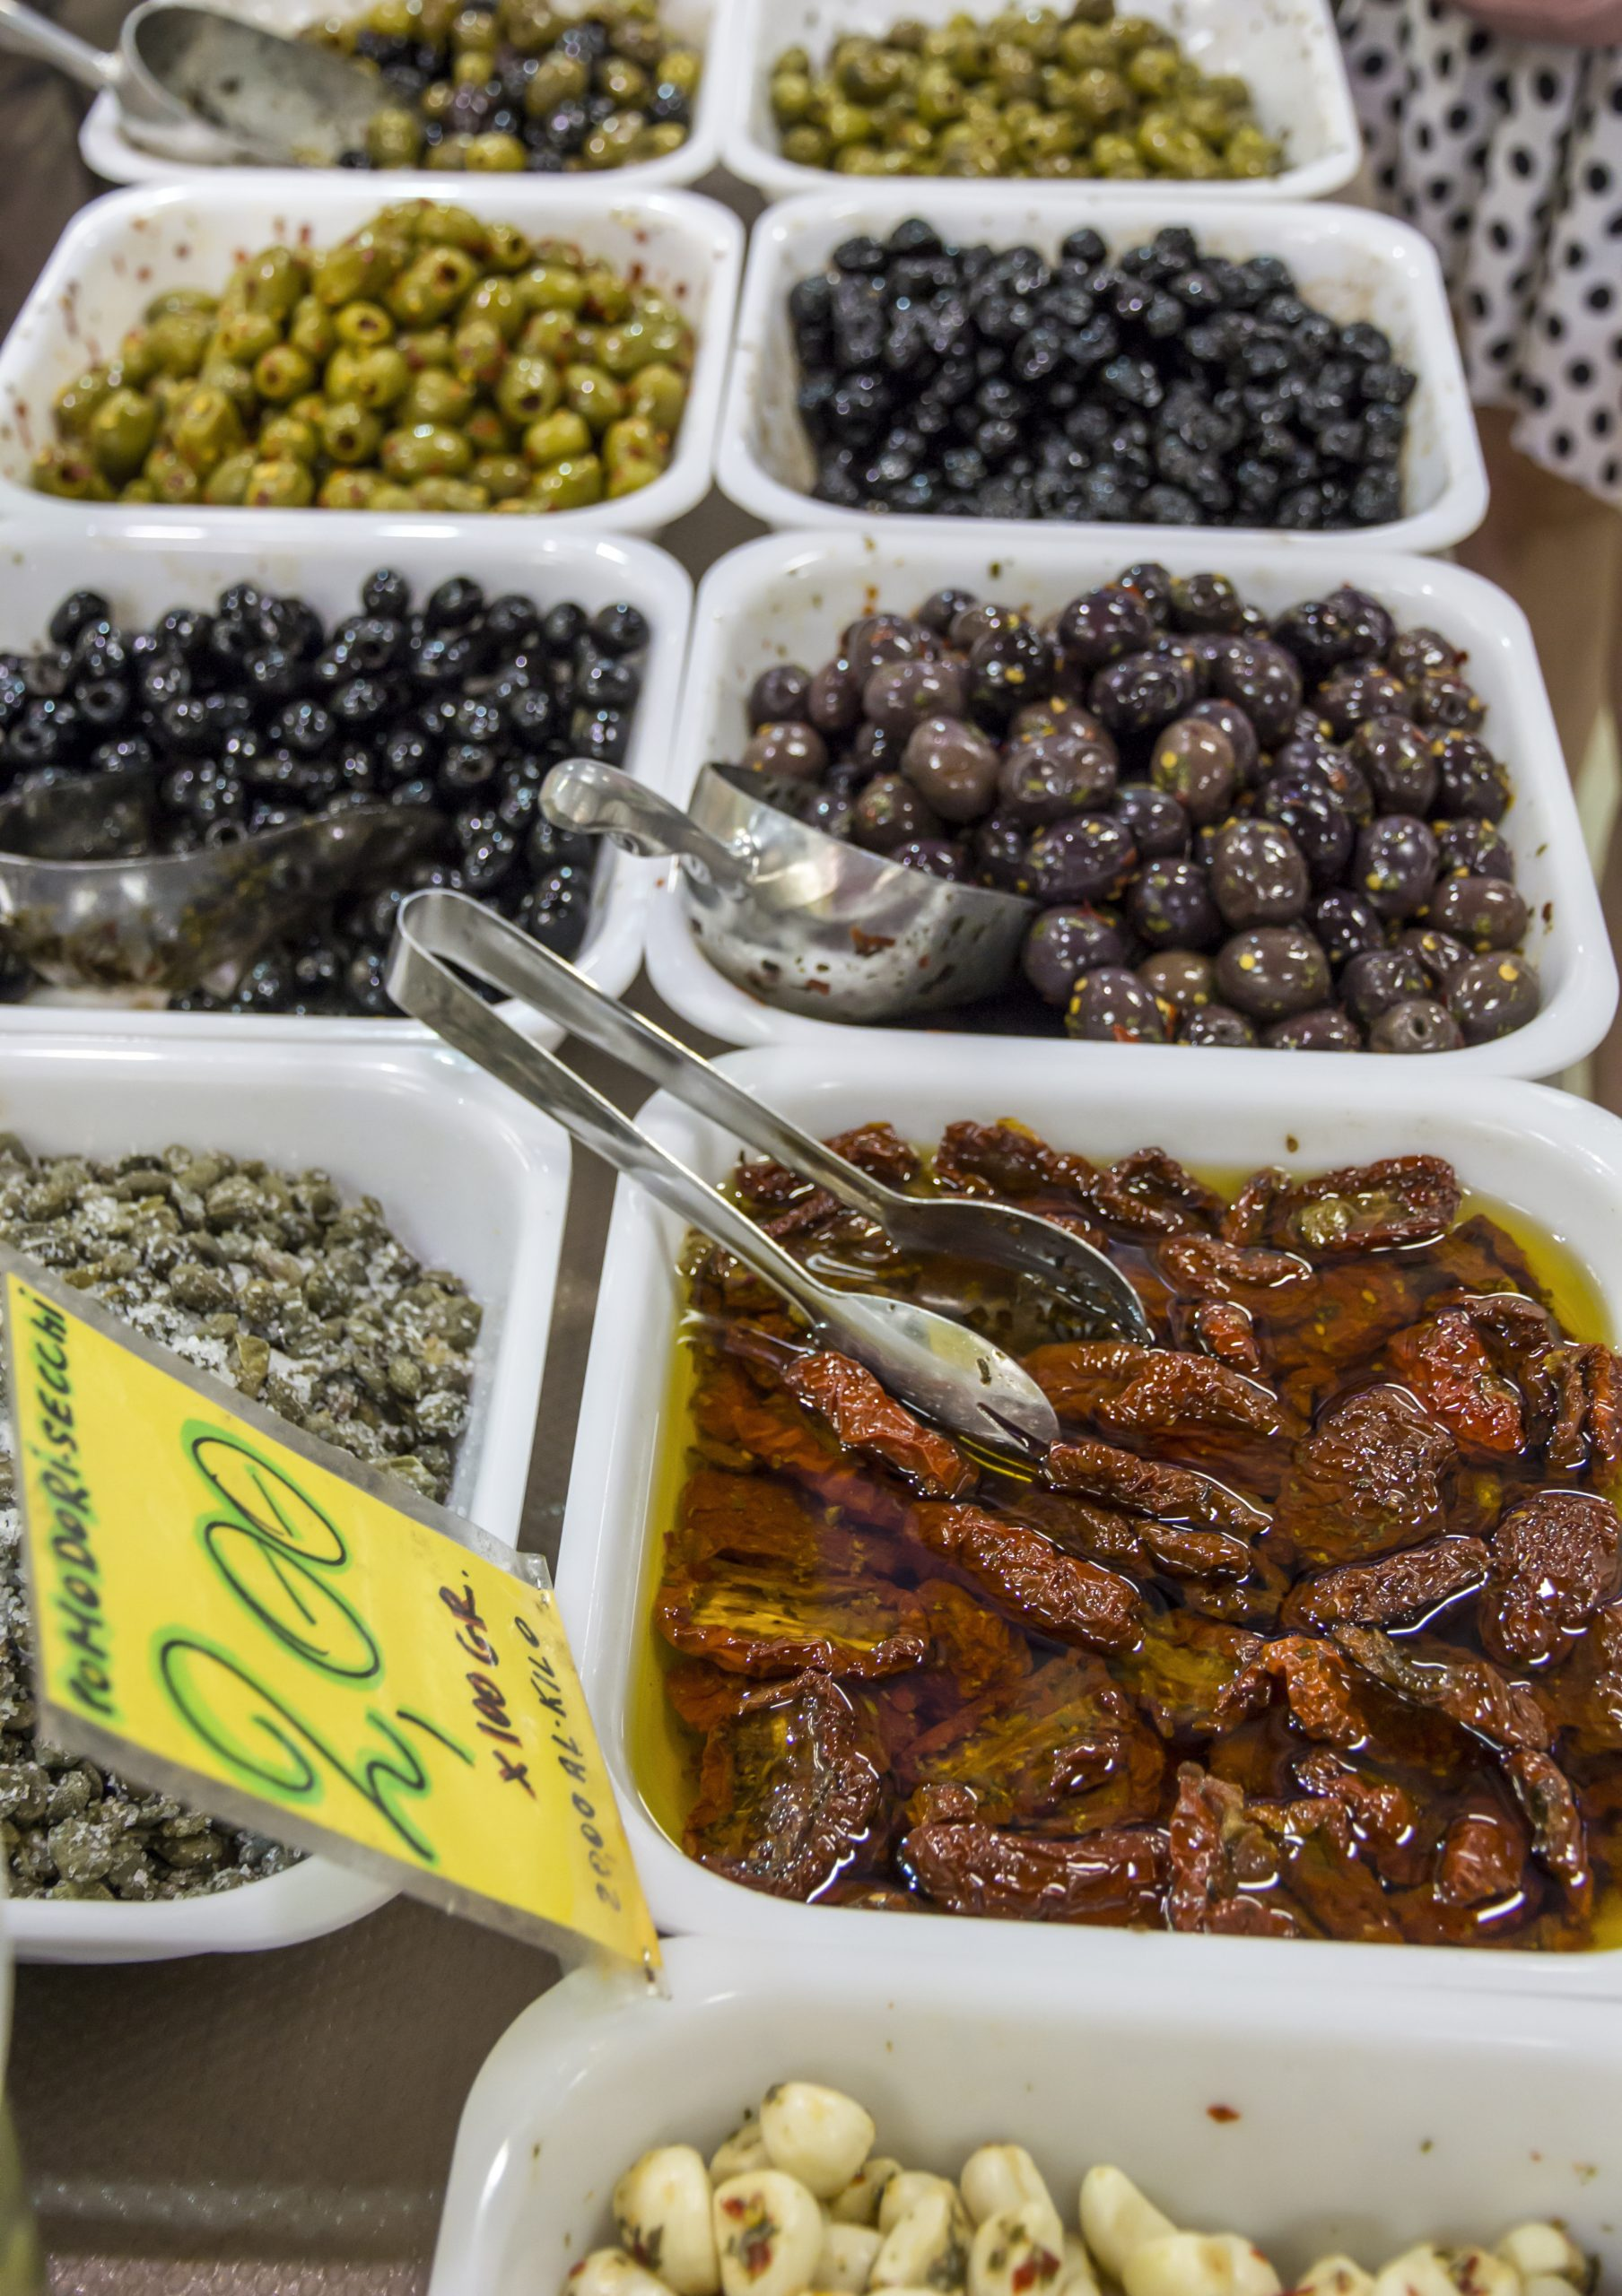 Olives and Dried tomatoes at the market